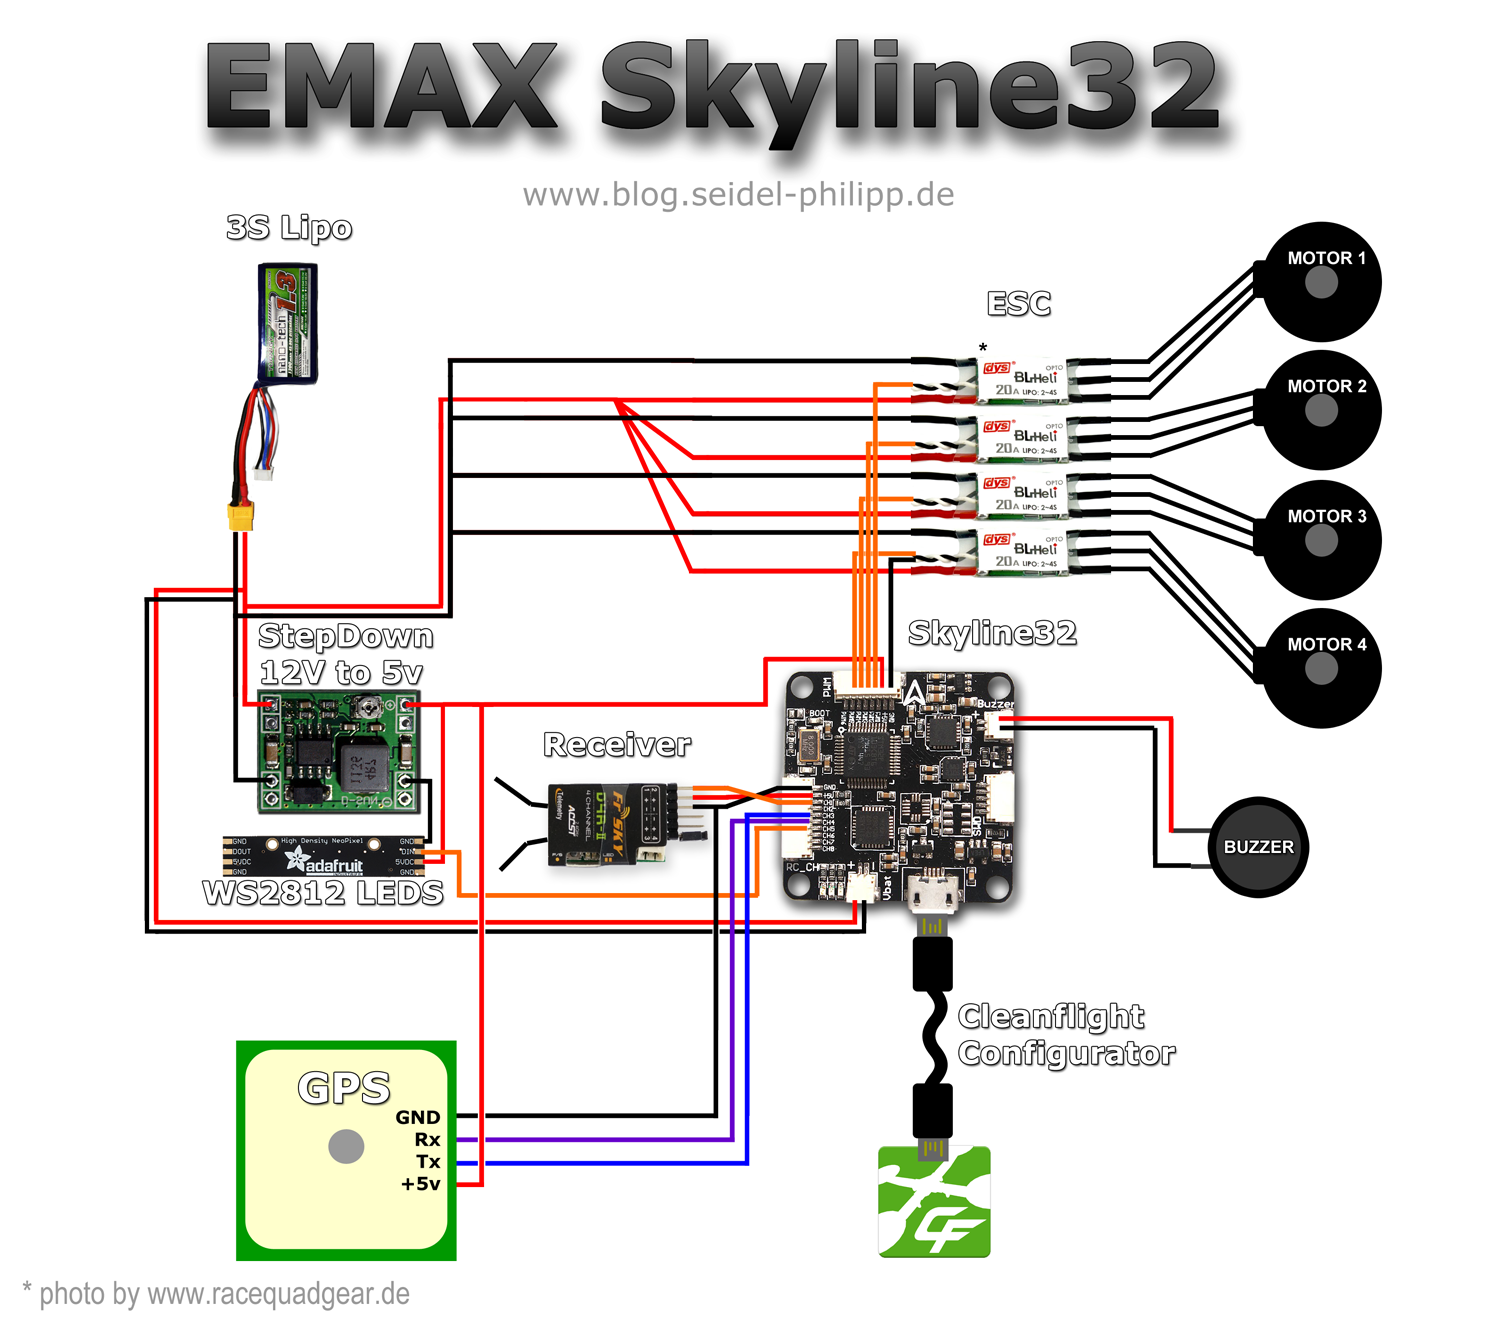 Skyline32 naze32 setup wiring guide to motors and esc quadcopter skyline32 naze32 setup wiring guide to motors and esc cheapraybanclubmaster Choice Image